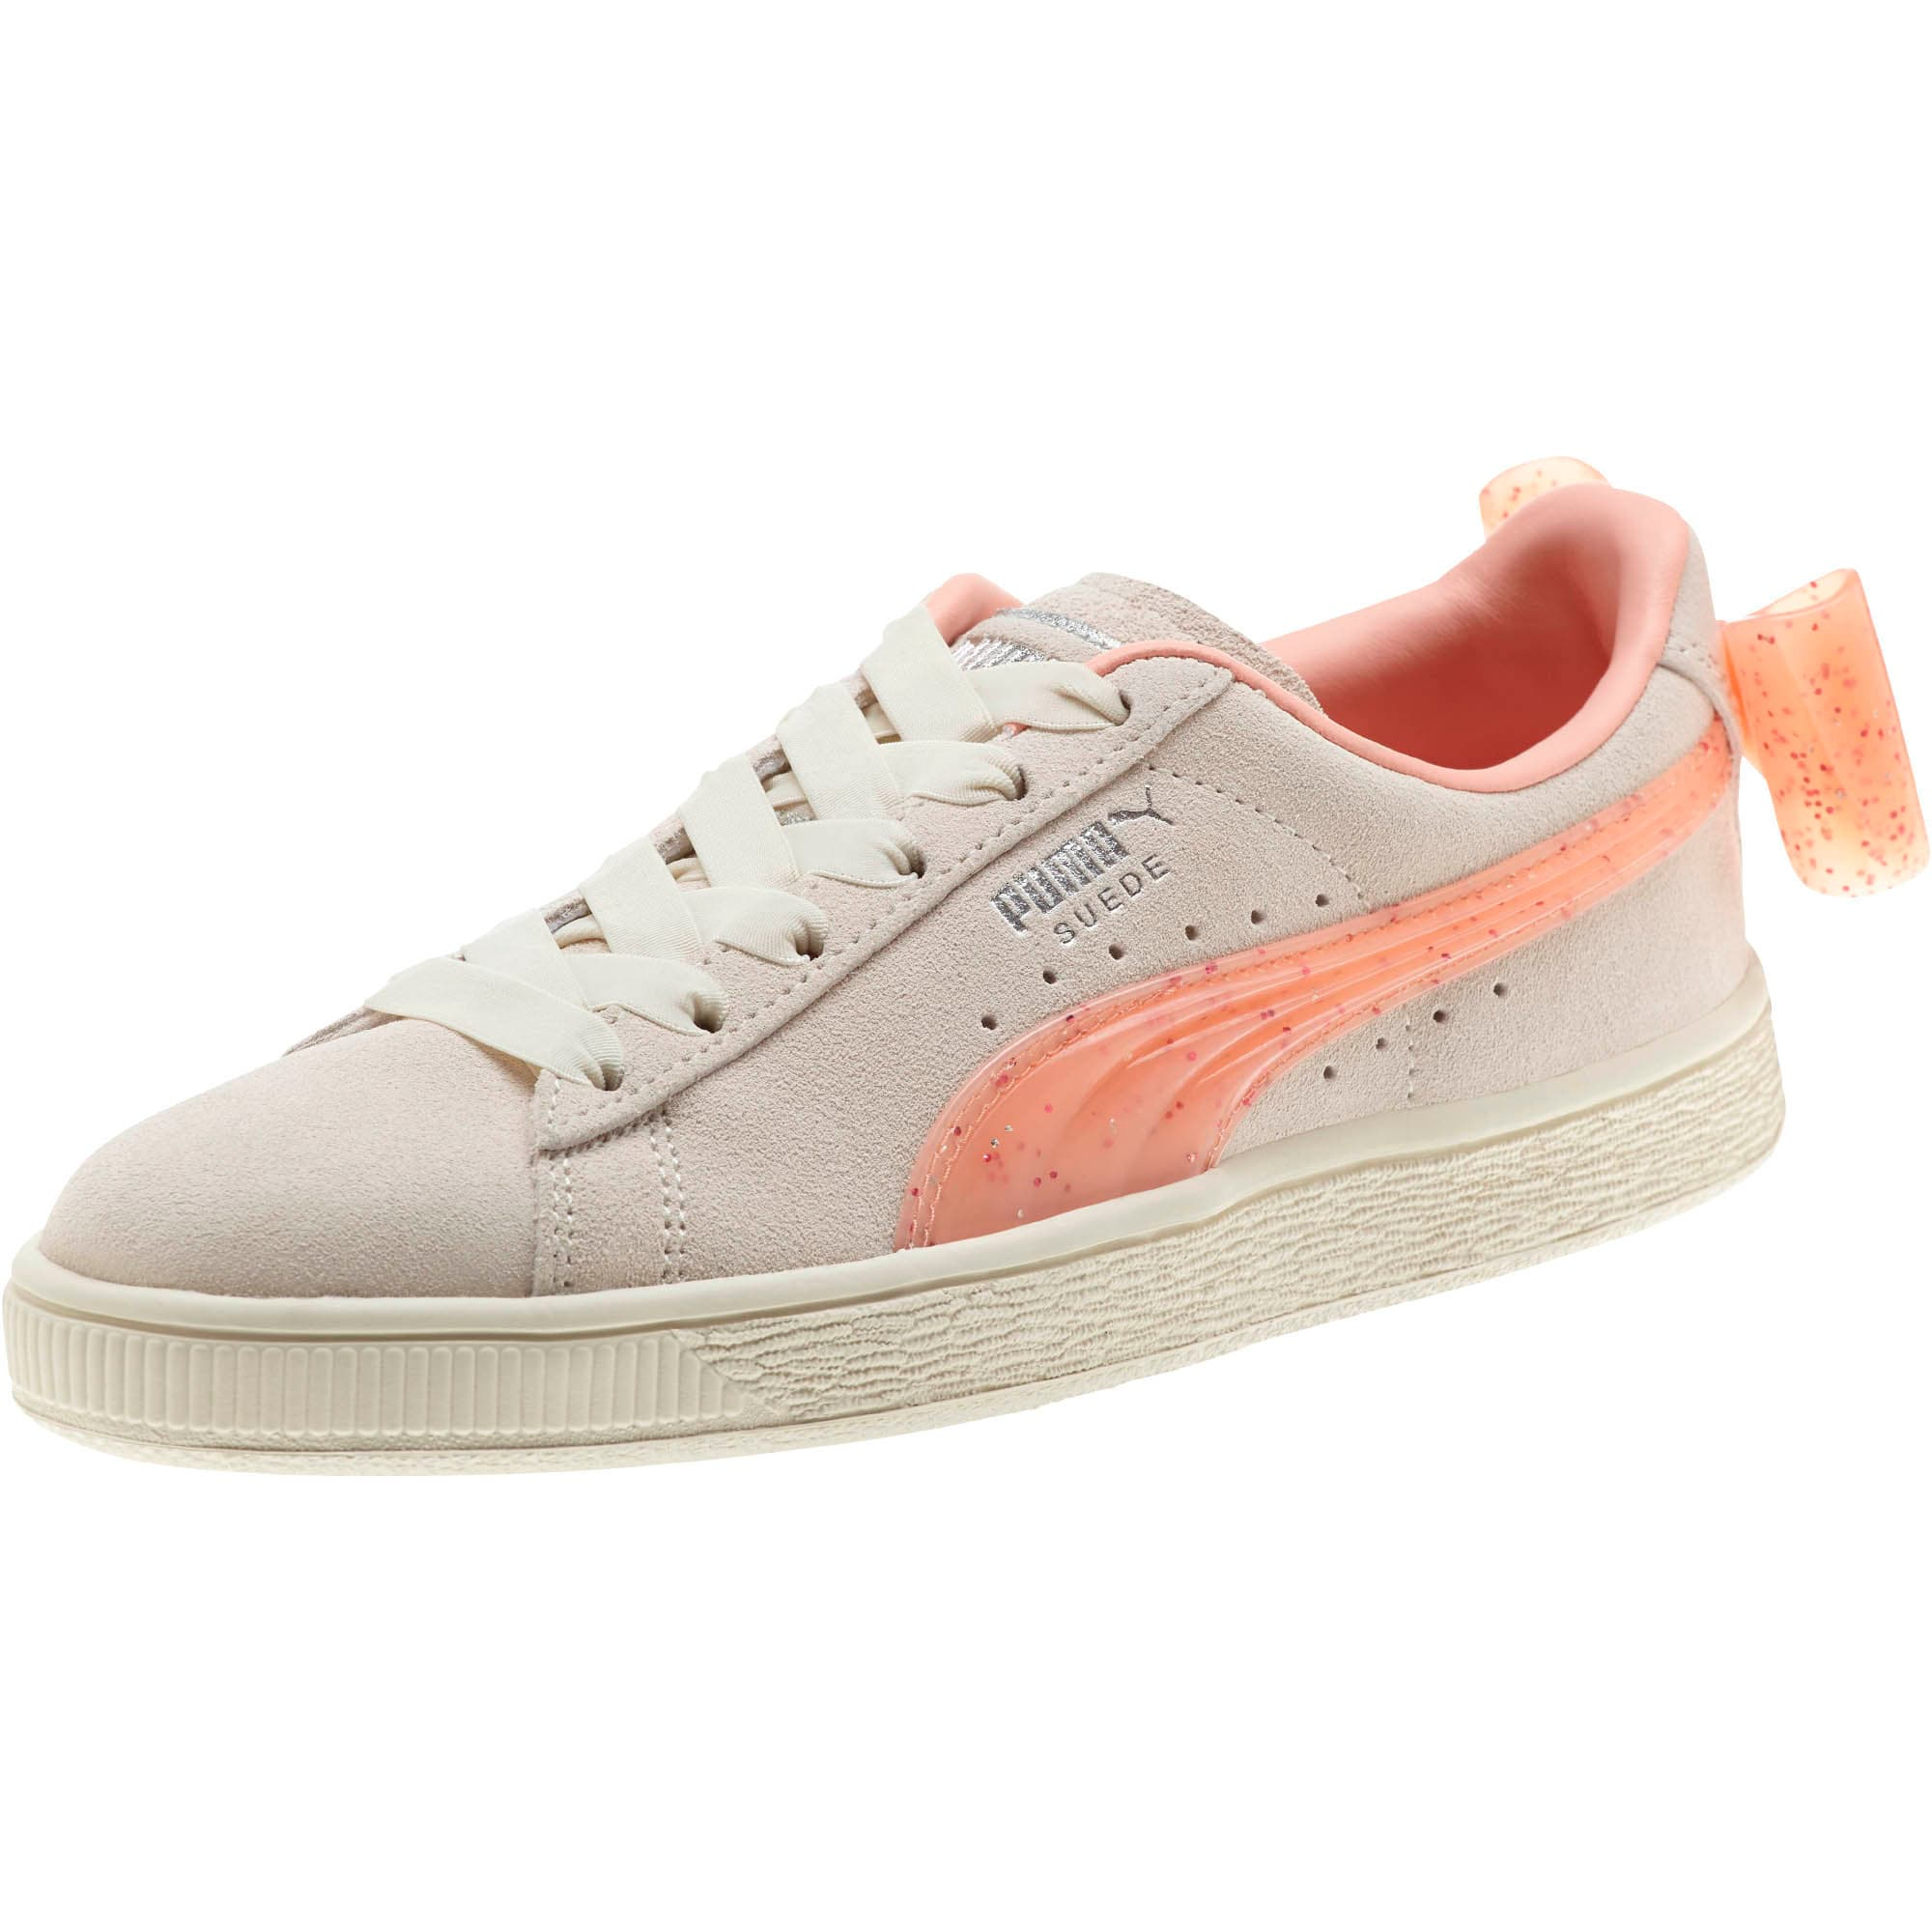 Miniatura 1 de Zapatos deportivos Suede Jelly Bow JR, Whis White-Peach Bud-Silver, mediano